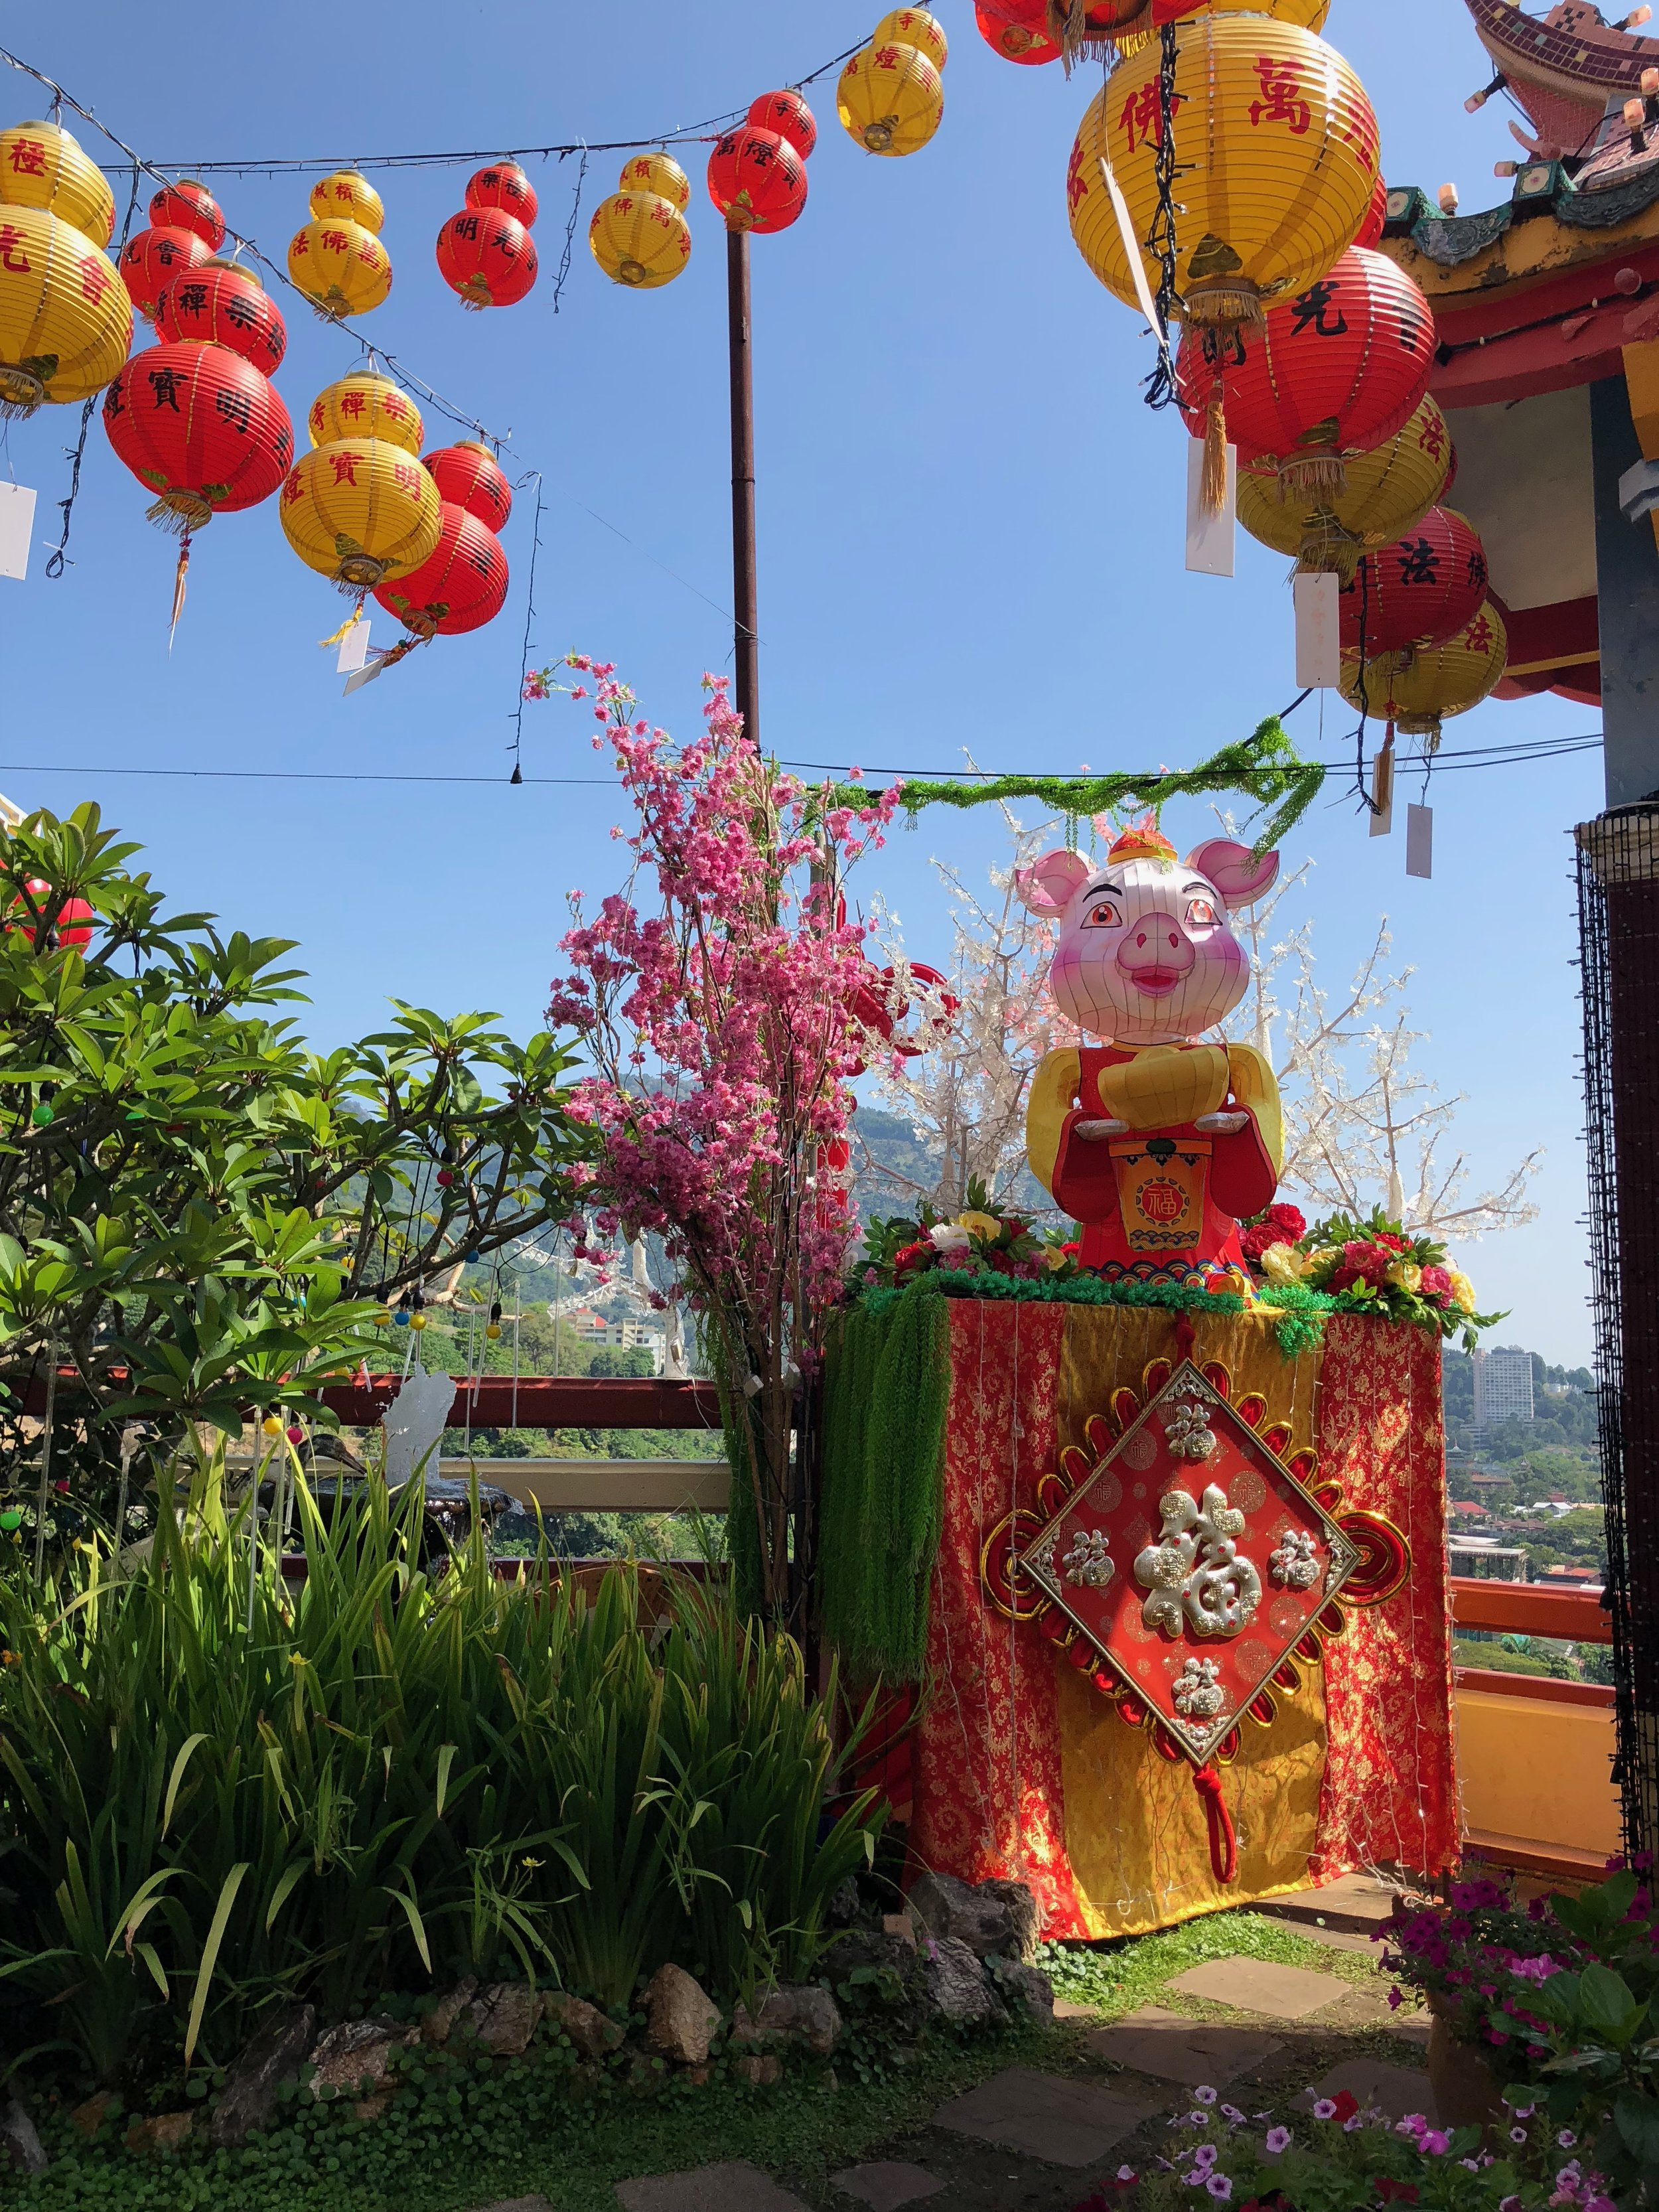 The celebration for the Year of the Boar in Kek Lok Si Temple.